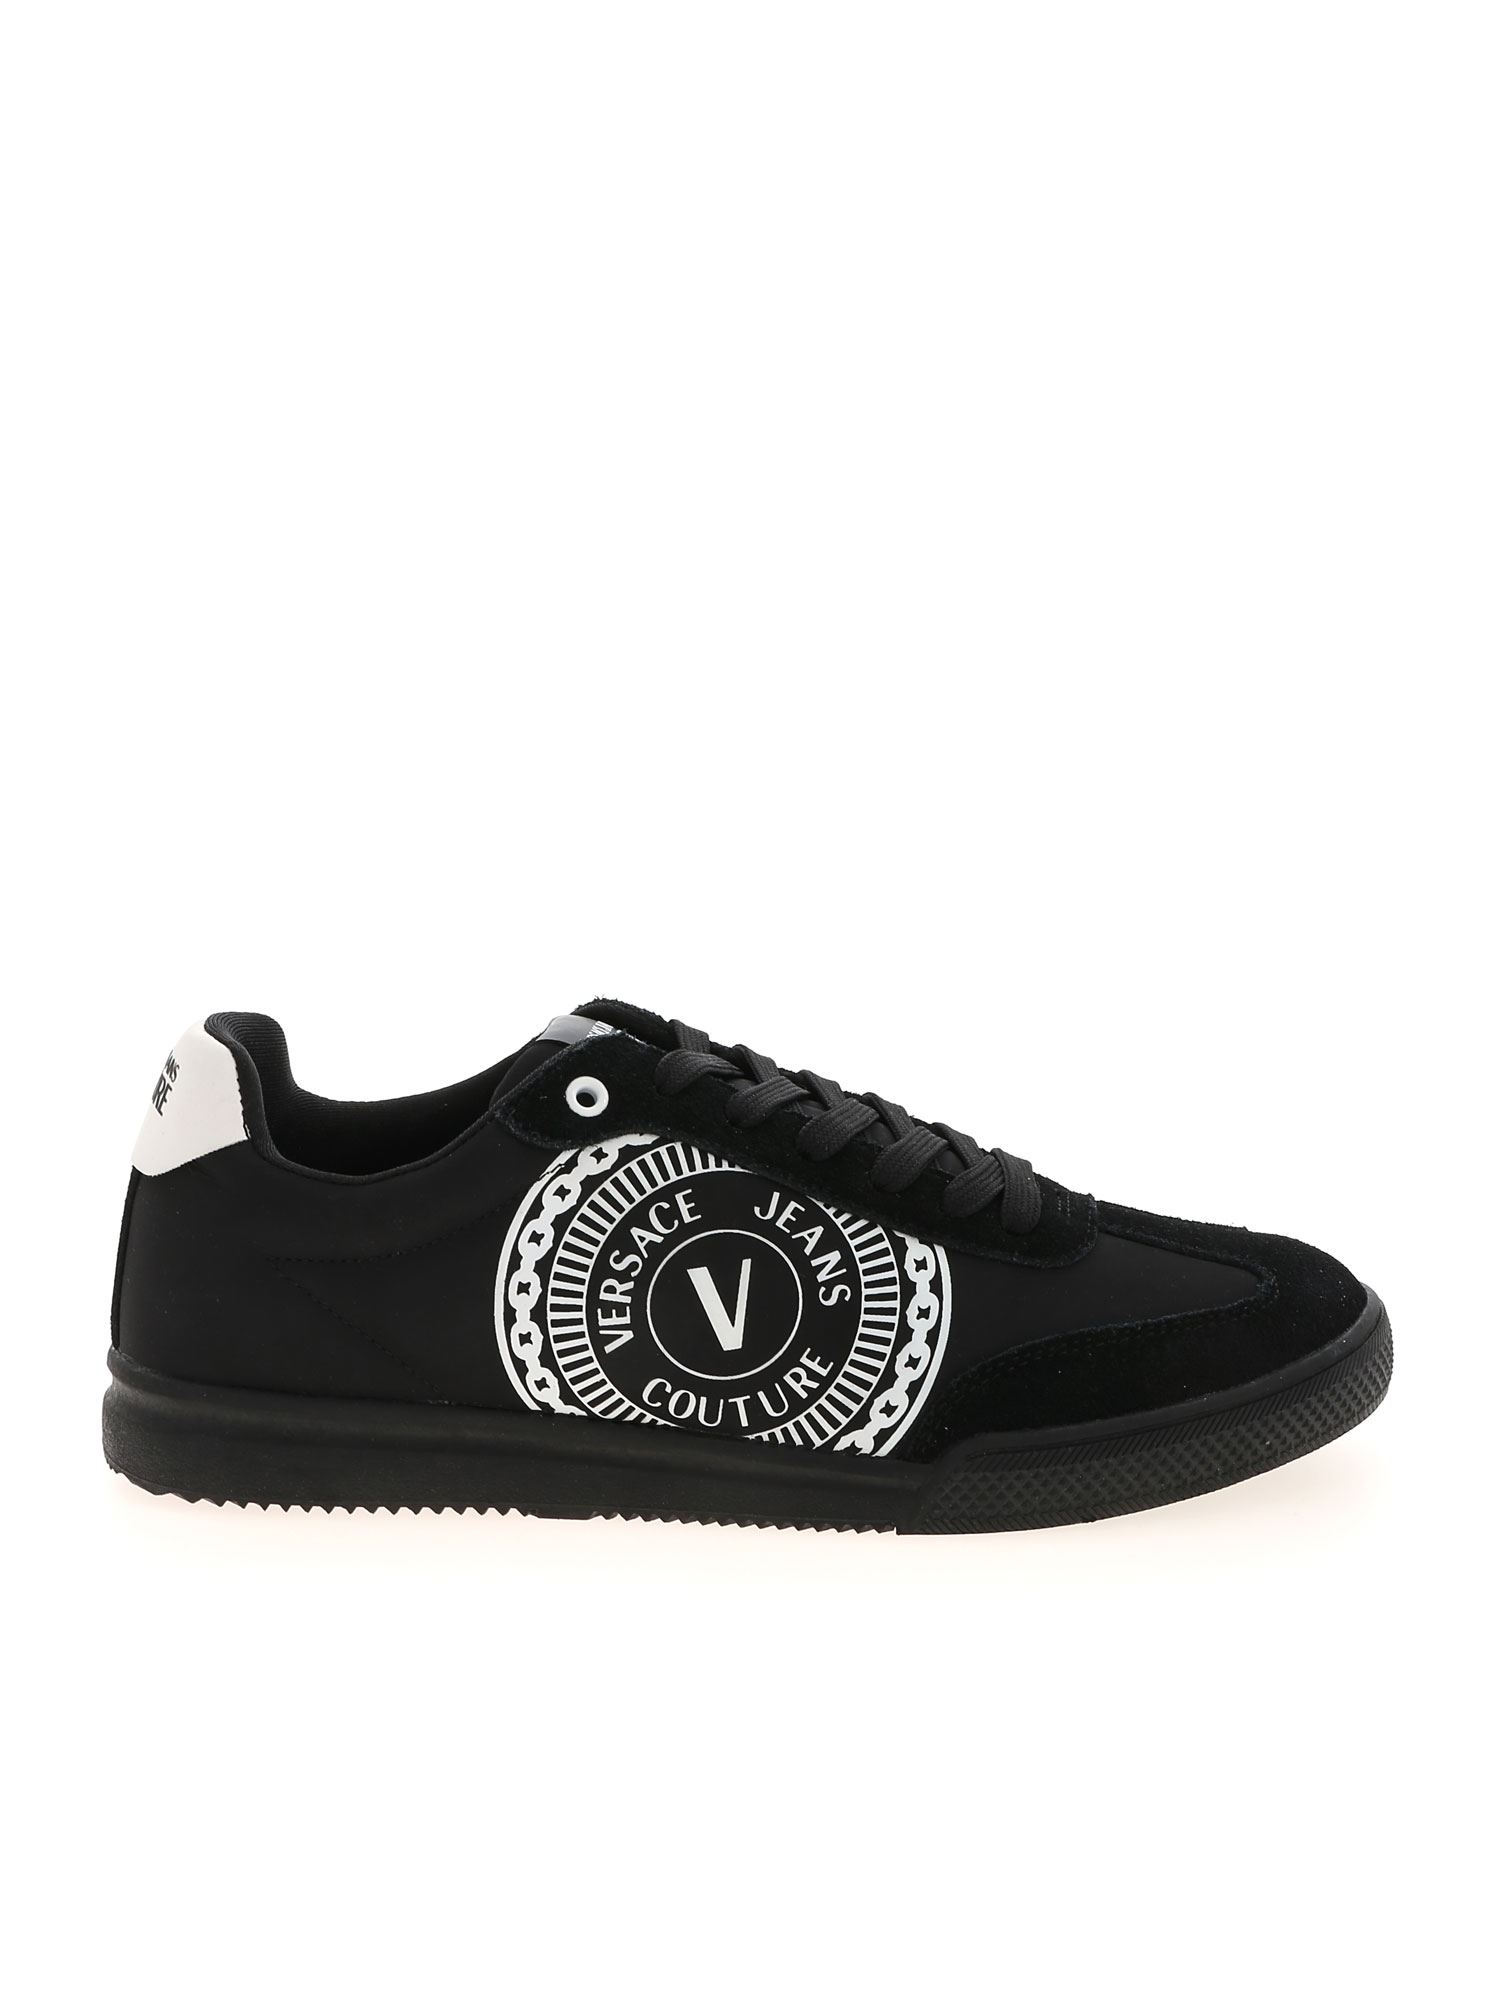 Versace Jeans Couture Low tops V-EMPLEM LOGO SNEAKERS IN BLACK AND WHITE